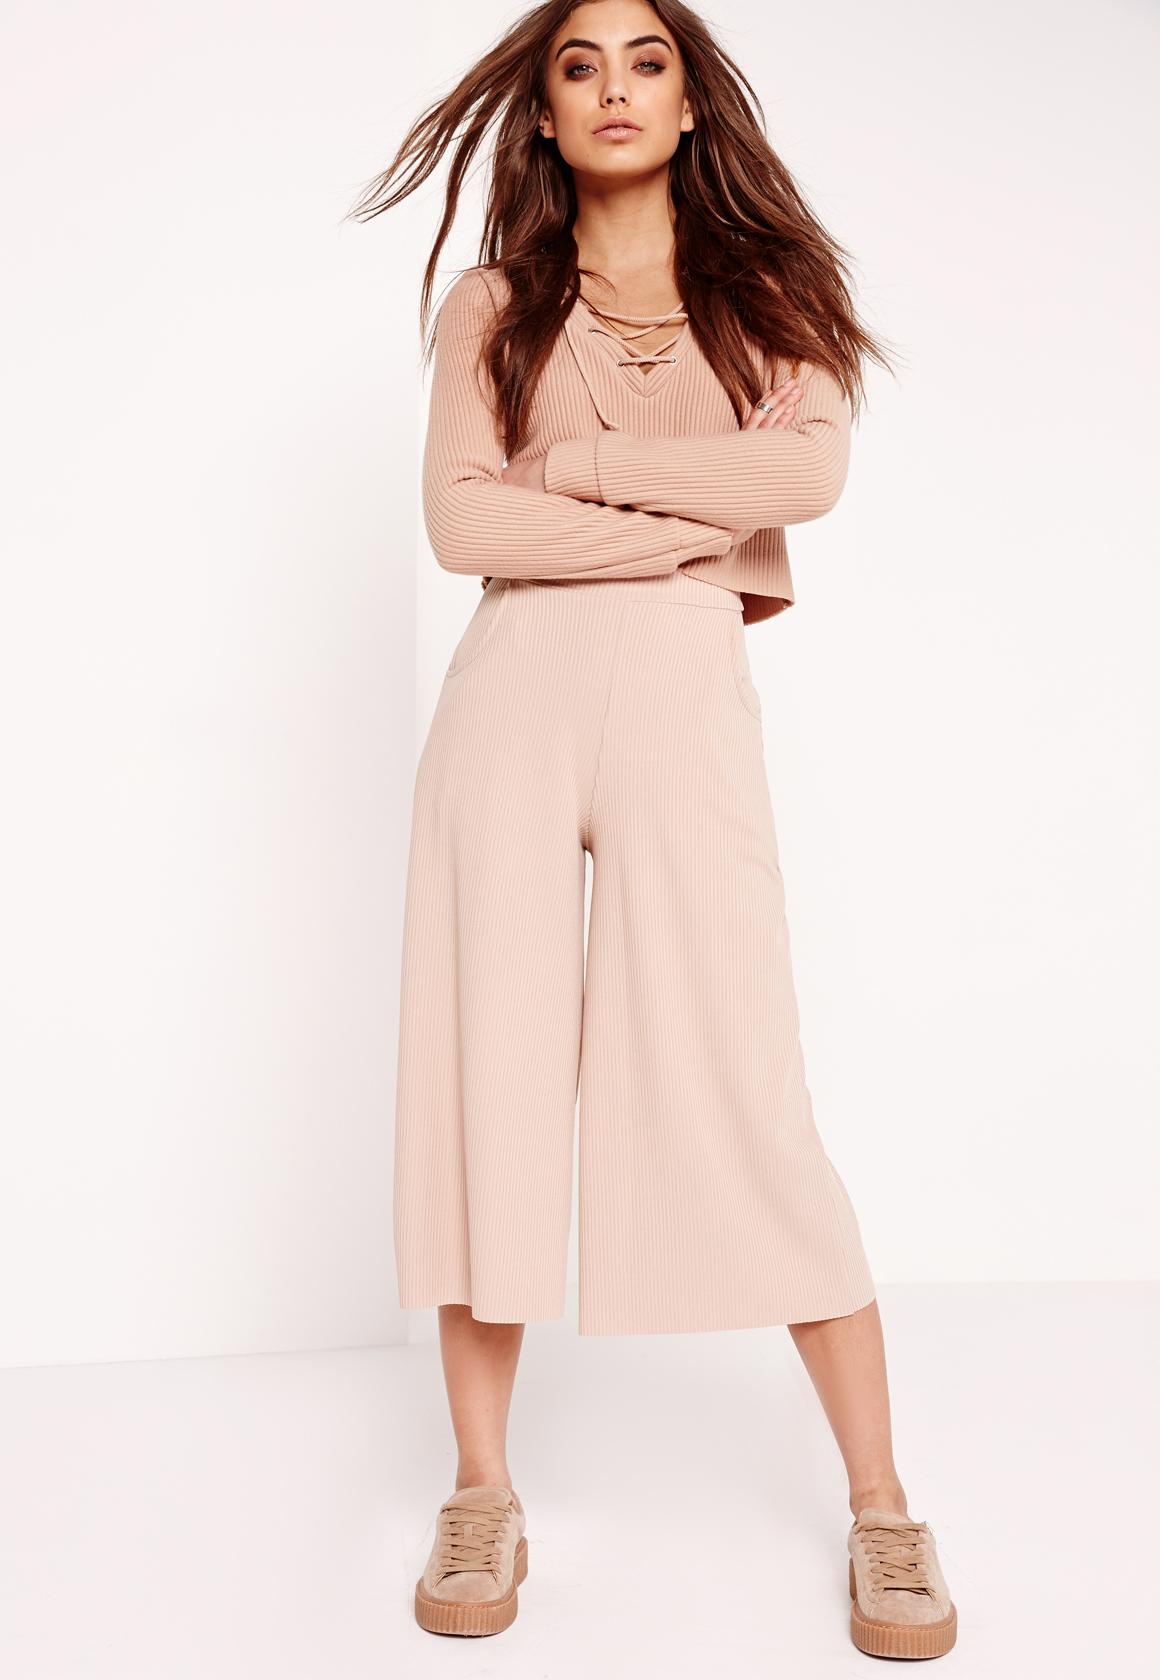 Forum on this topic: 15 Chic Plus Size Outfits With Culottes, 15-chic-plus-size-outfits-with-culottes/